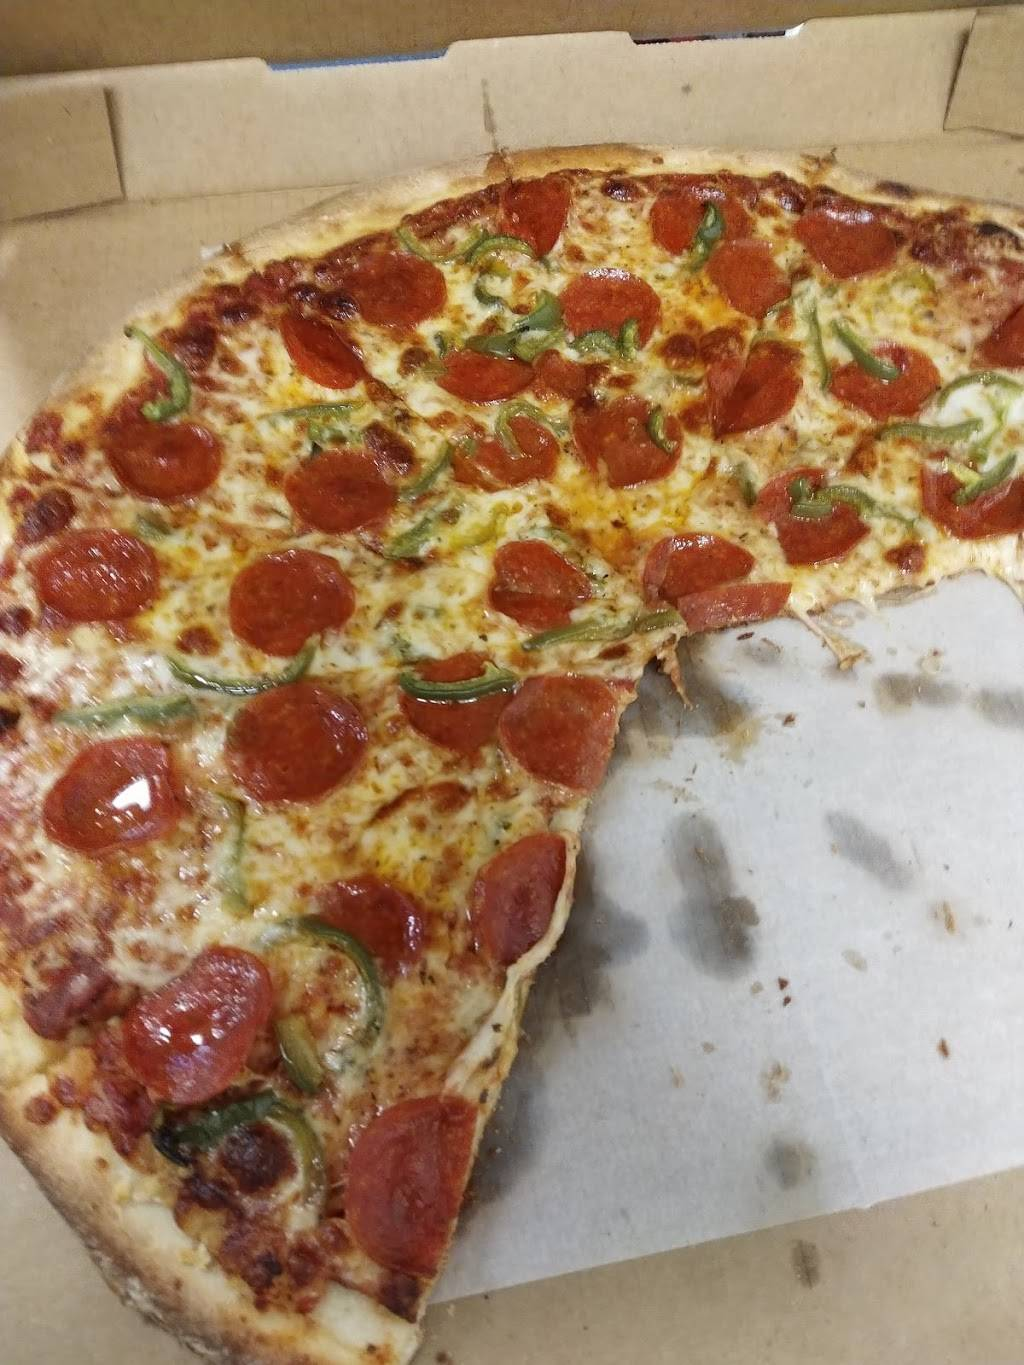 Romanos Pizza | meal delivery | 110 N Homestead Blvd, Homestead, FL 33030, USA | 3052467788 OR +1 305-246-7788